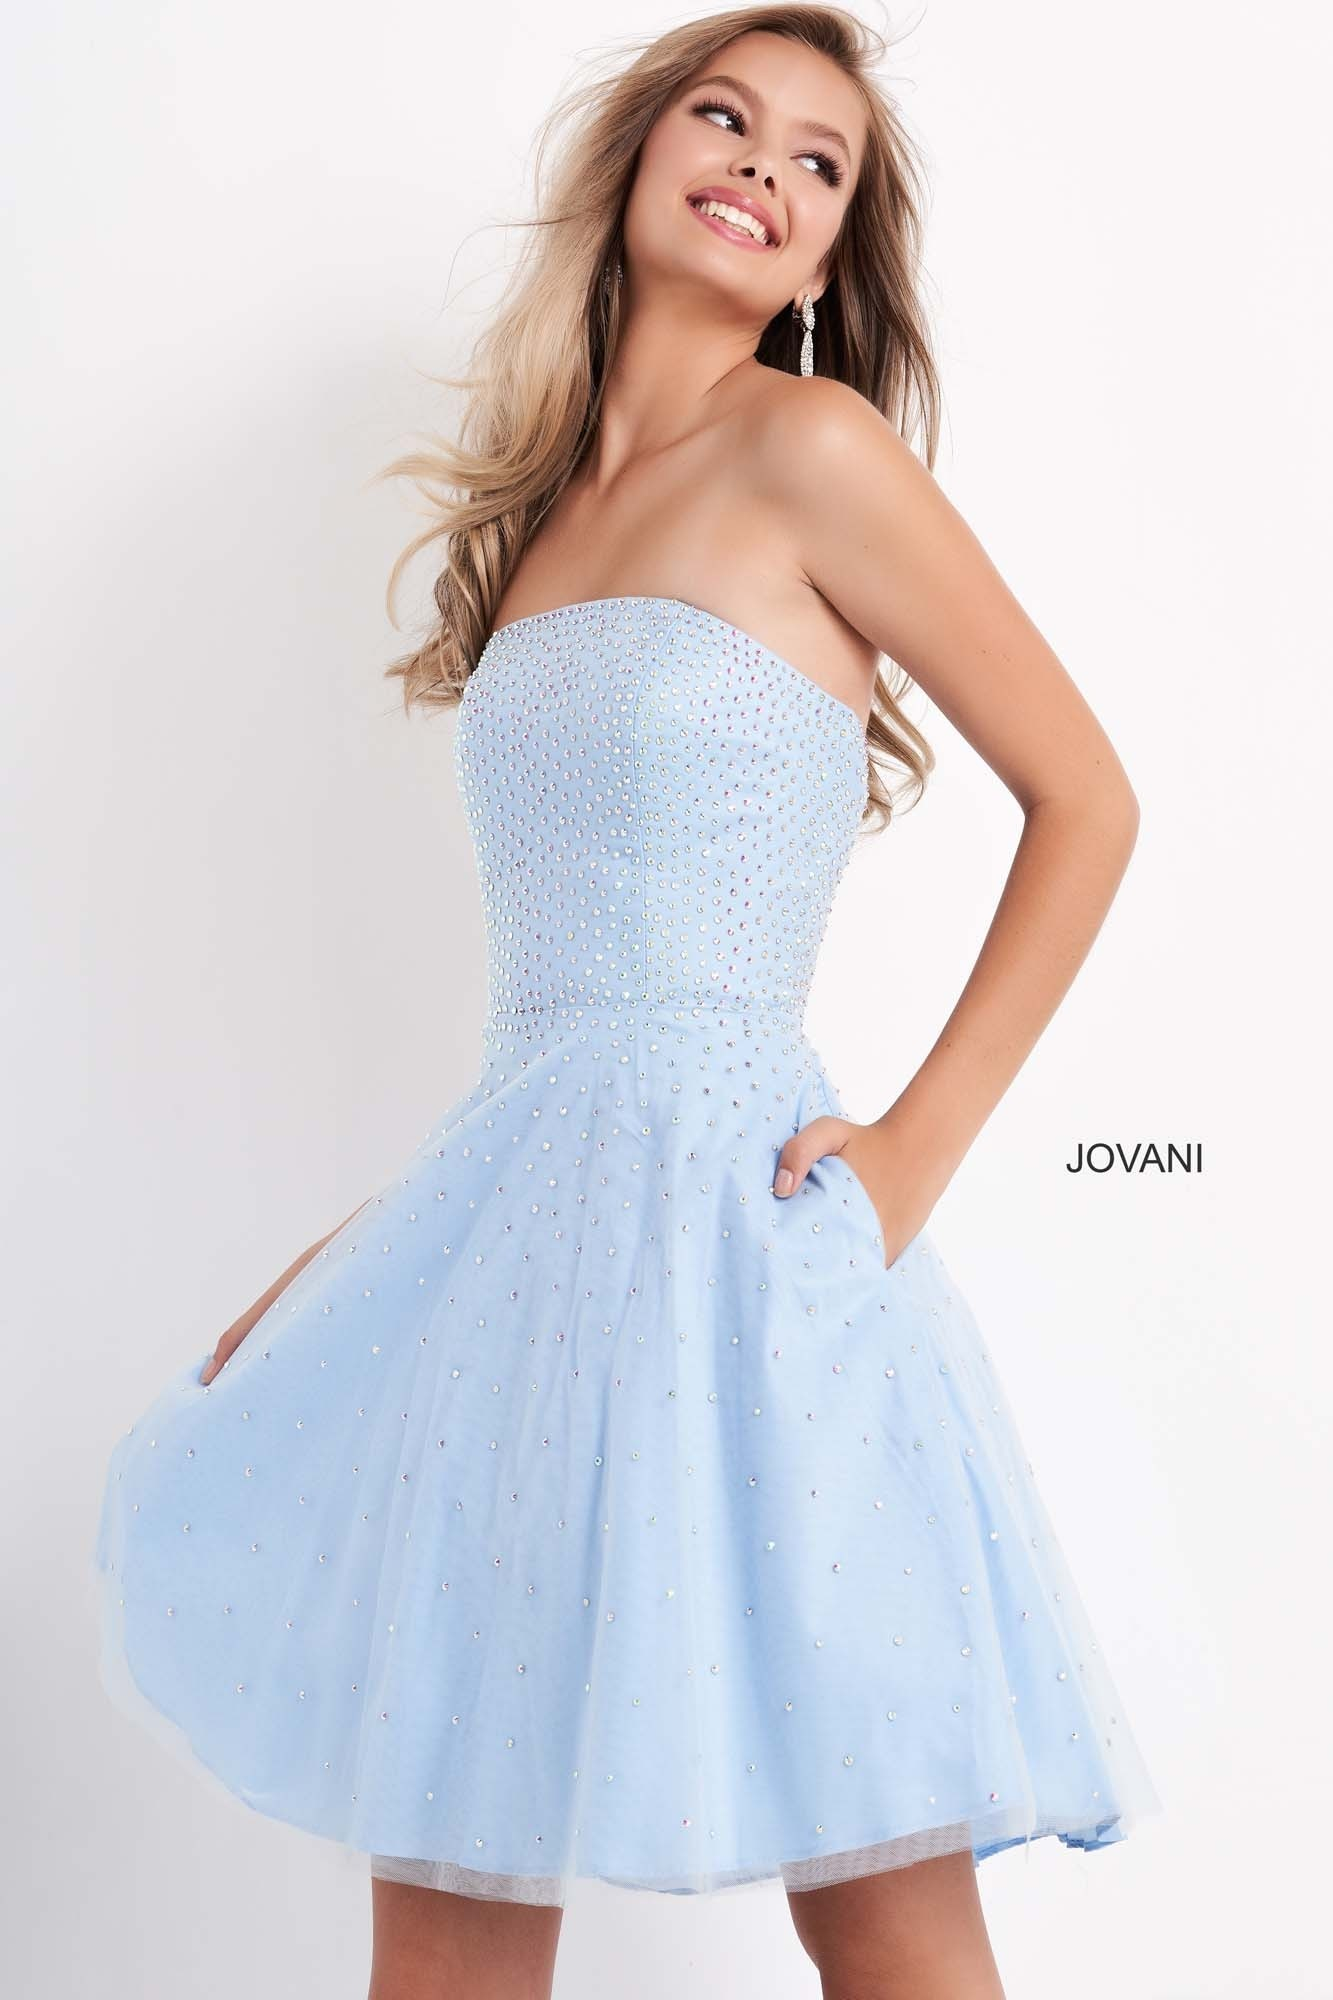 Jovani K68936 Strapless Fit and Flare Beaded Girls Dress